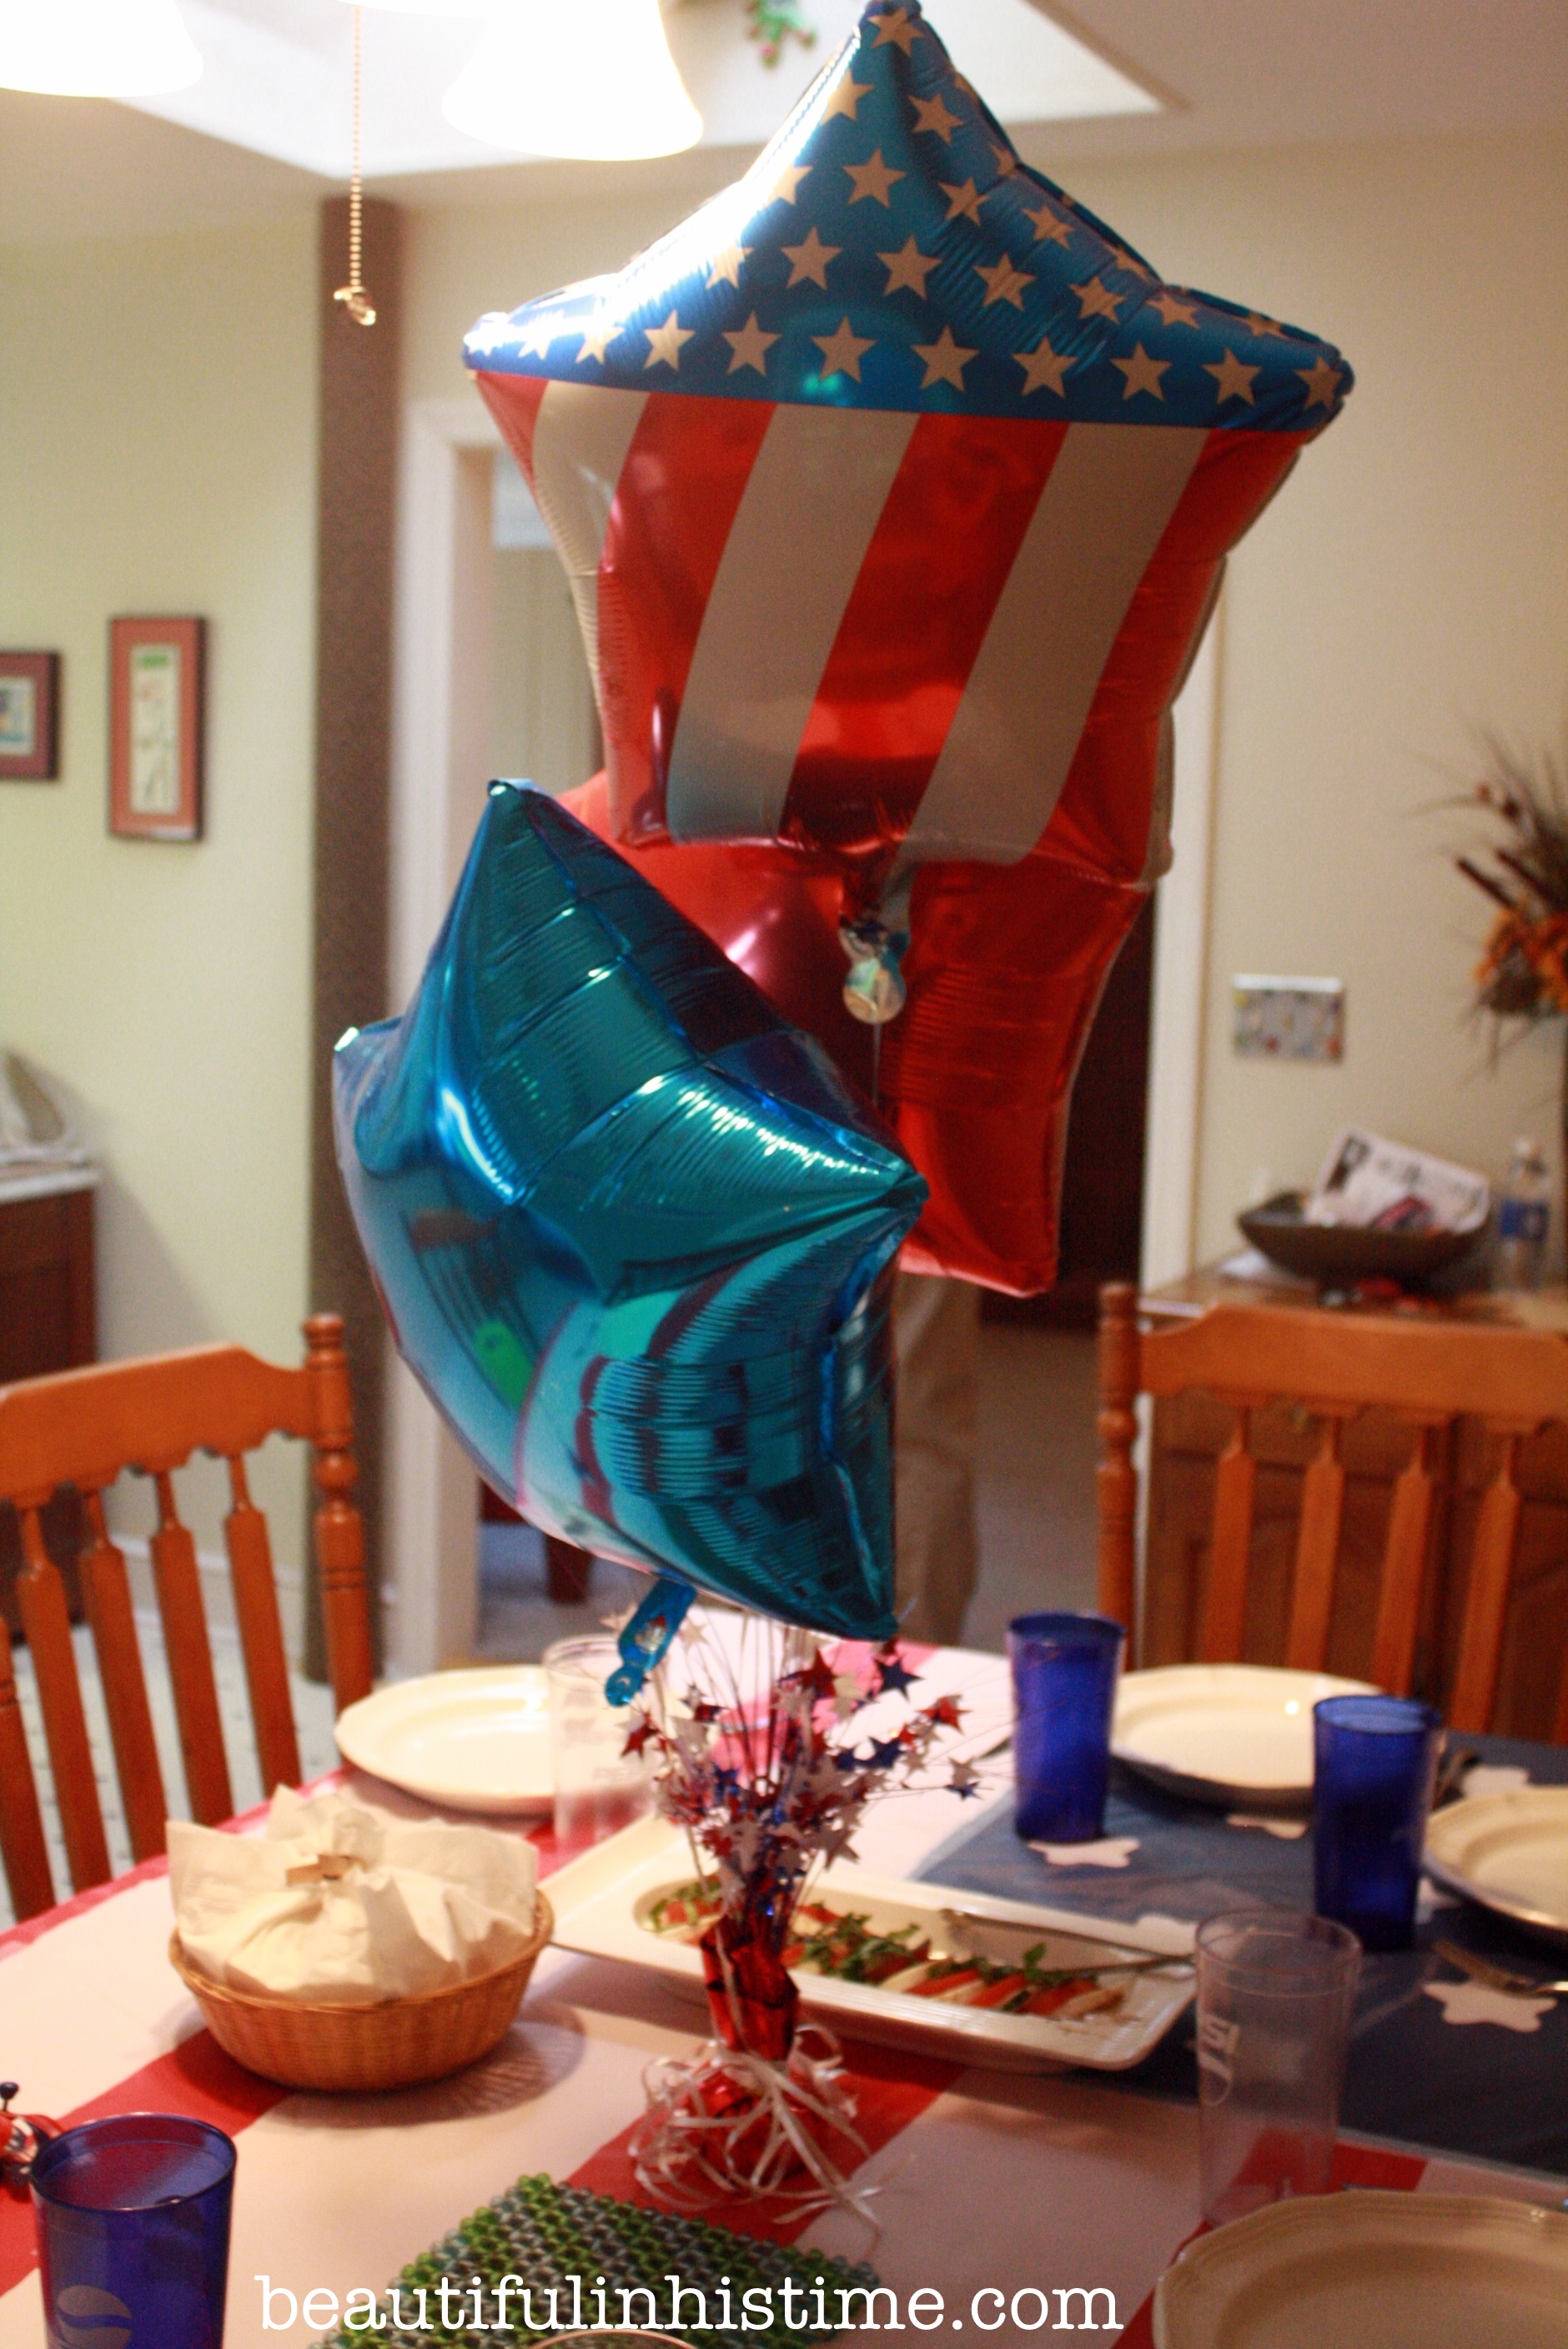 A Birthday Party for America! #birthday #america #4thofjuly #independenceday #party #birthdayparty #balloons